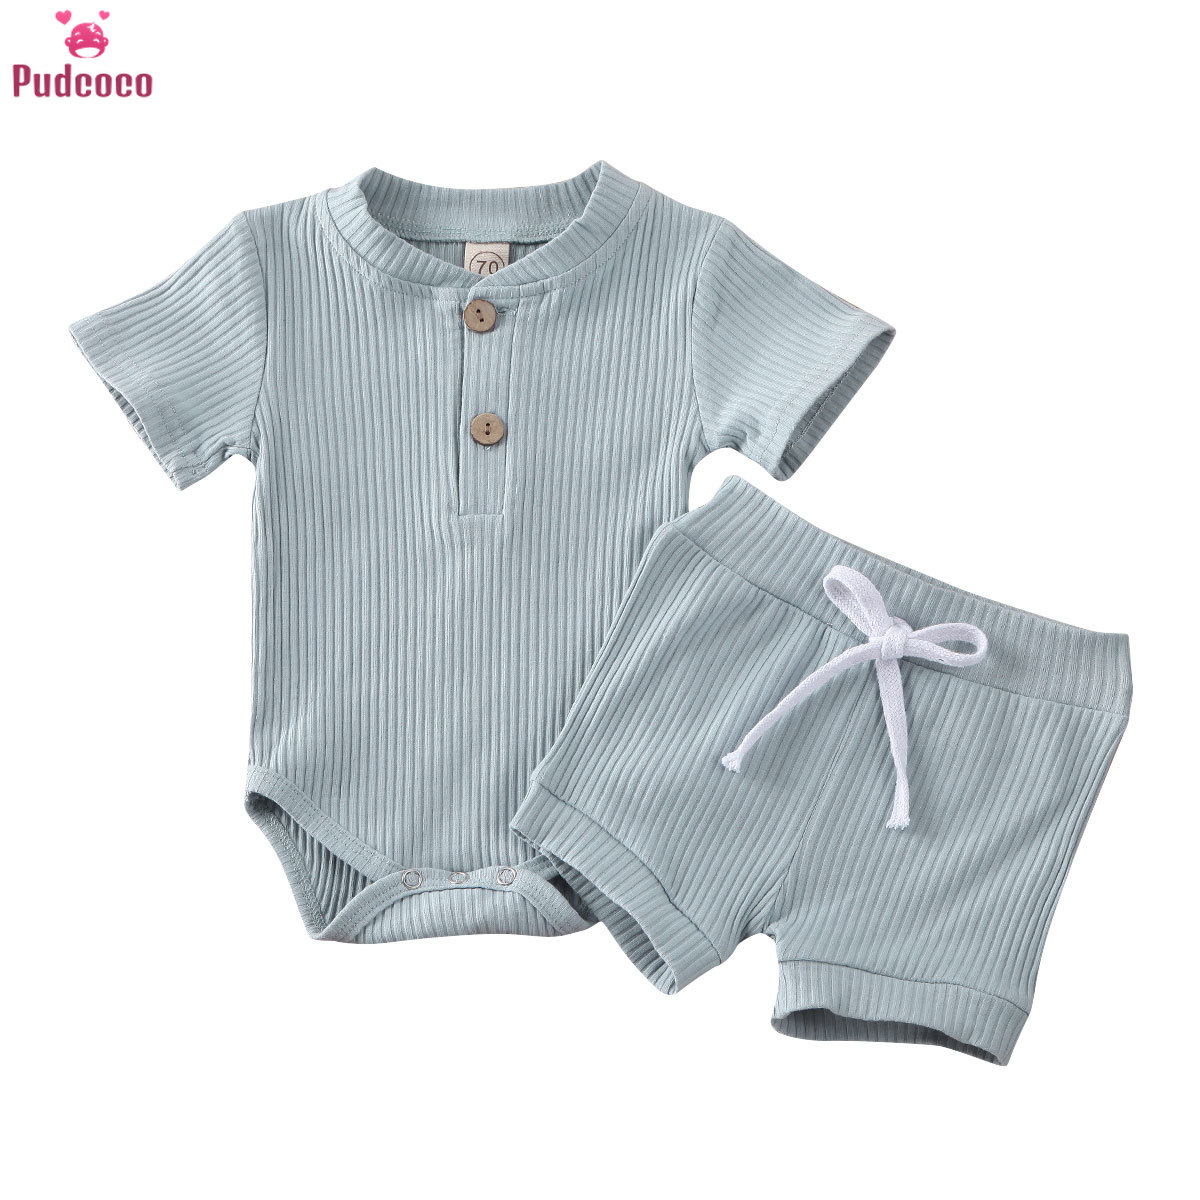 Baby Summer Clothing Newborn Kid Baby Boy Girl Clothes Short Sleeve Bodysuit Shorts Ribbed Solid 2Pcs Outfits Set 6-24 Months